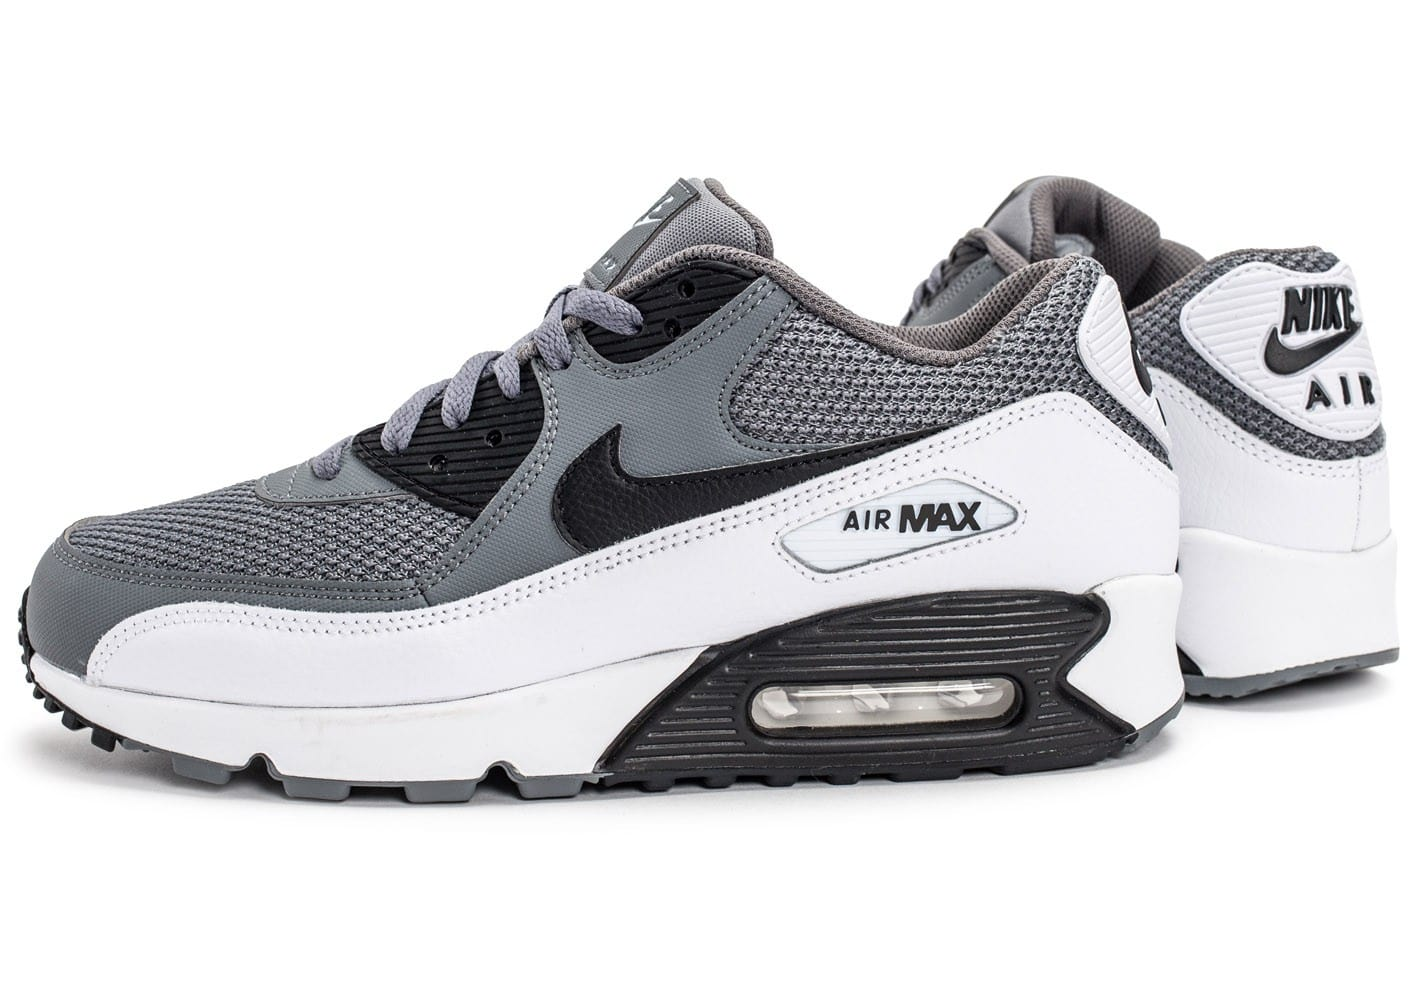 nike air max 90 essential grise et blanche chaussures homme chausport. Black Bedroom Furniture Sets. Home Design Ideas